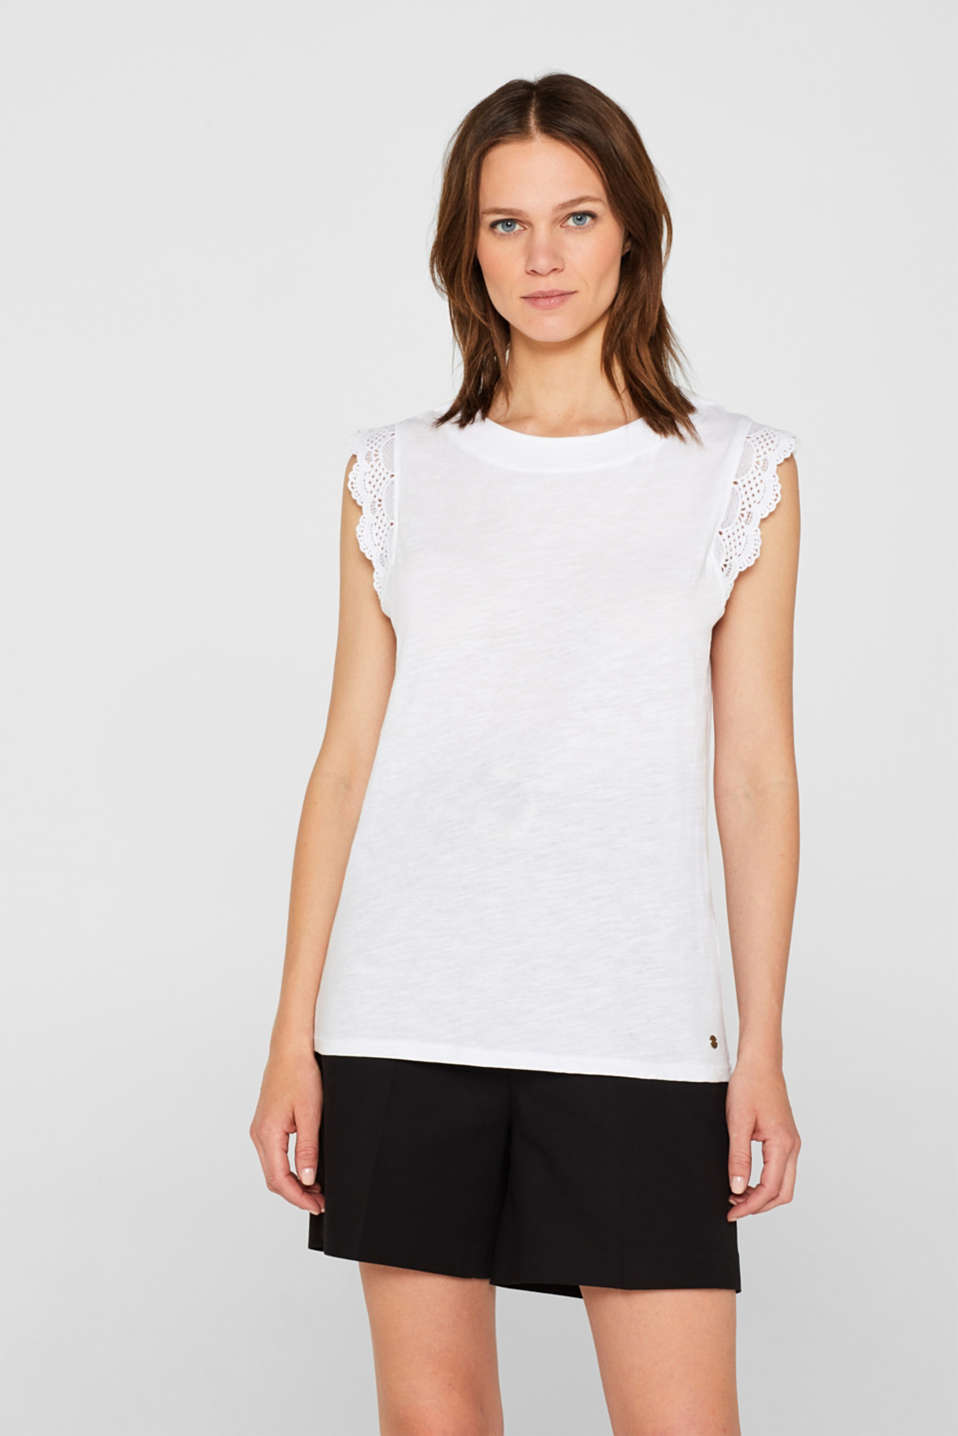 Esprit - Slub jersey top with crocheted lace